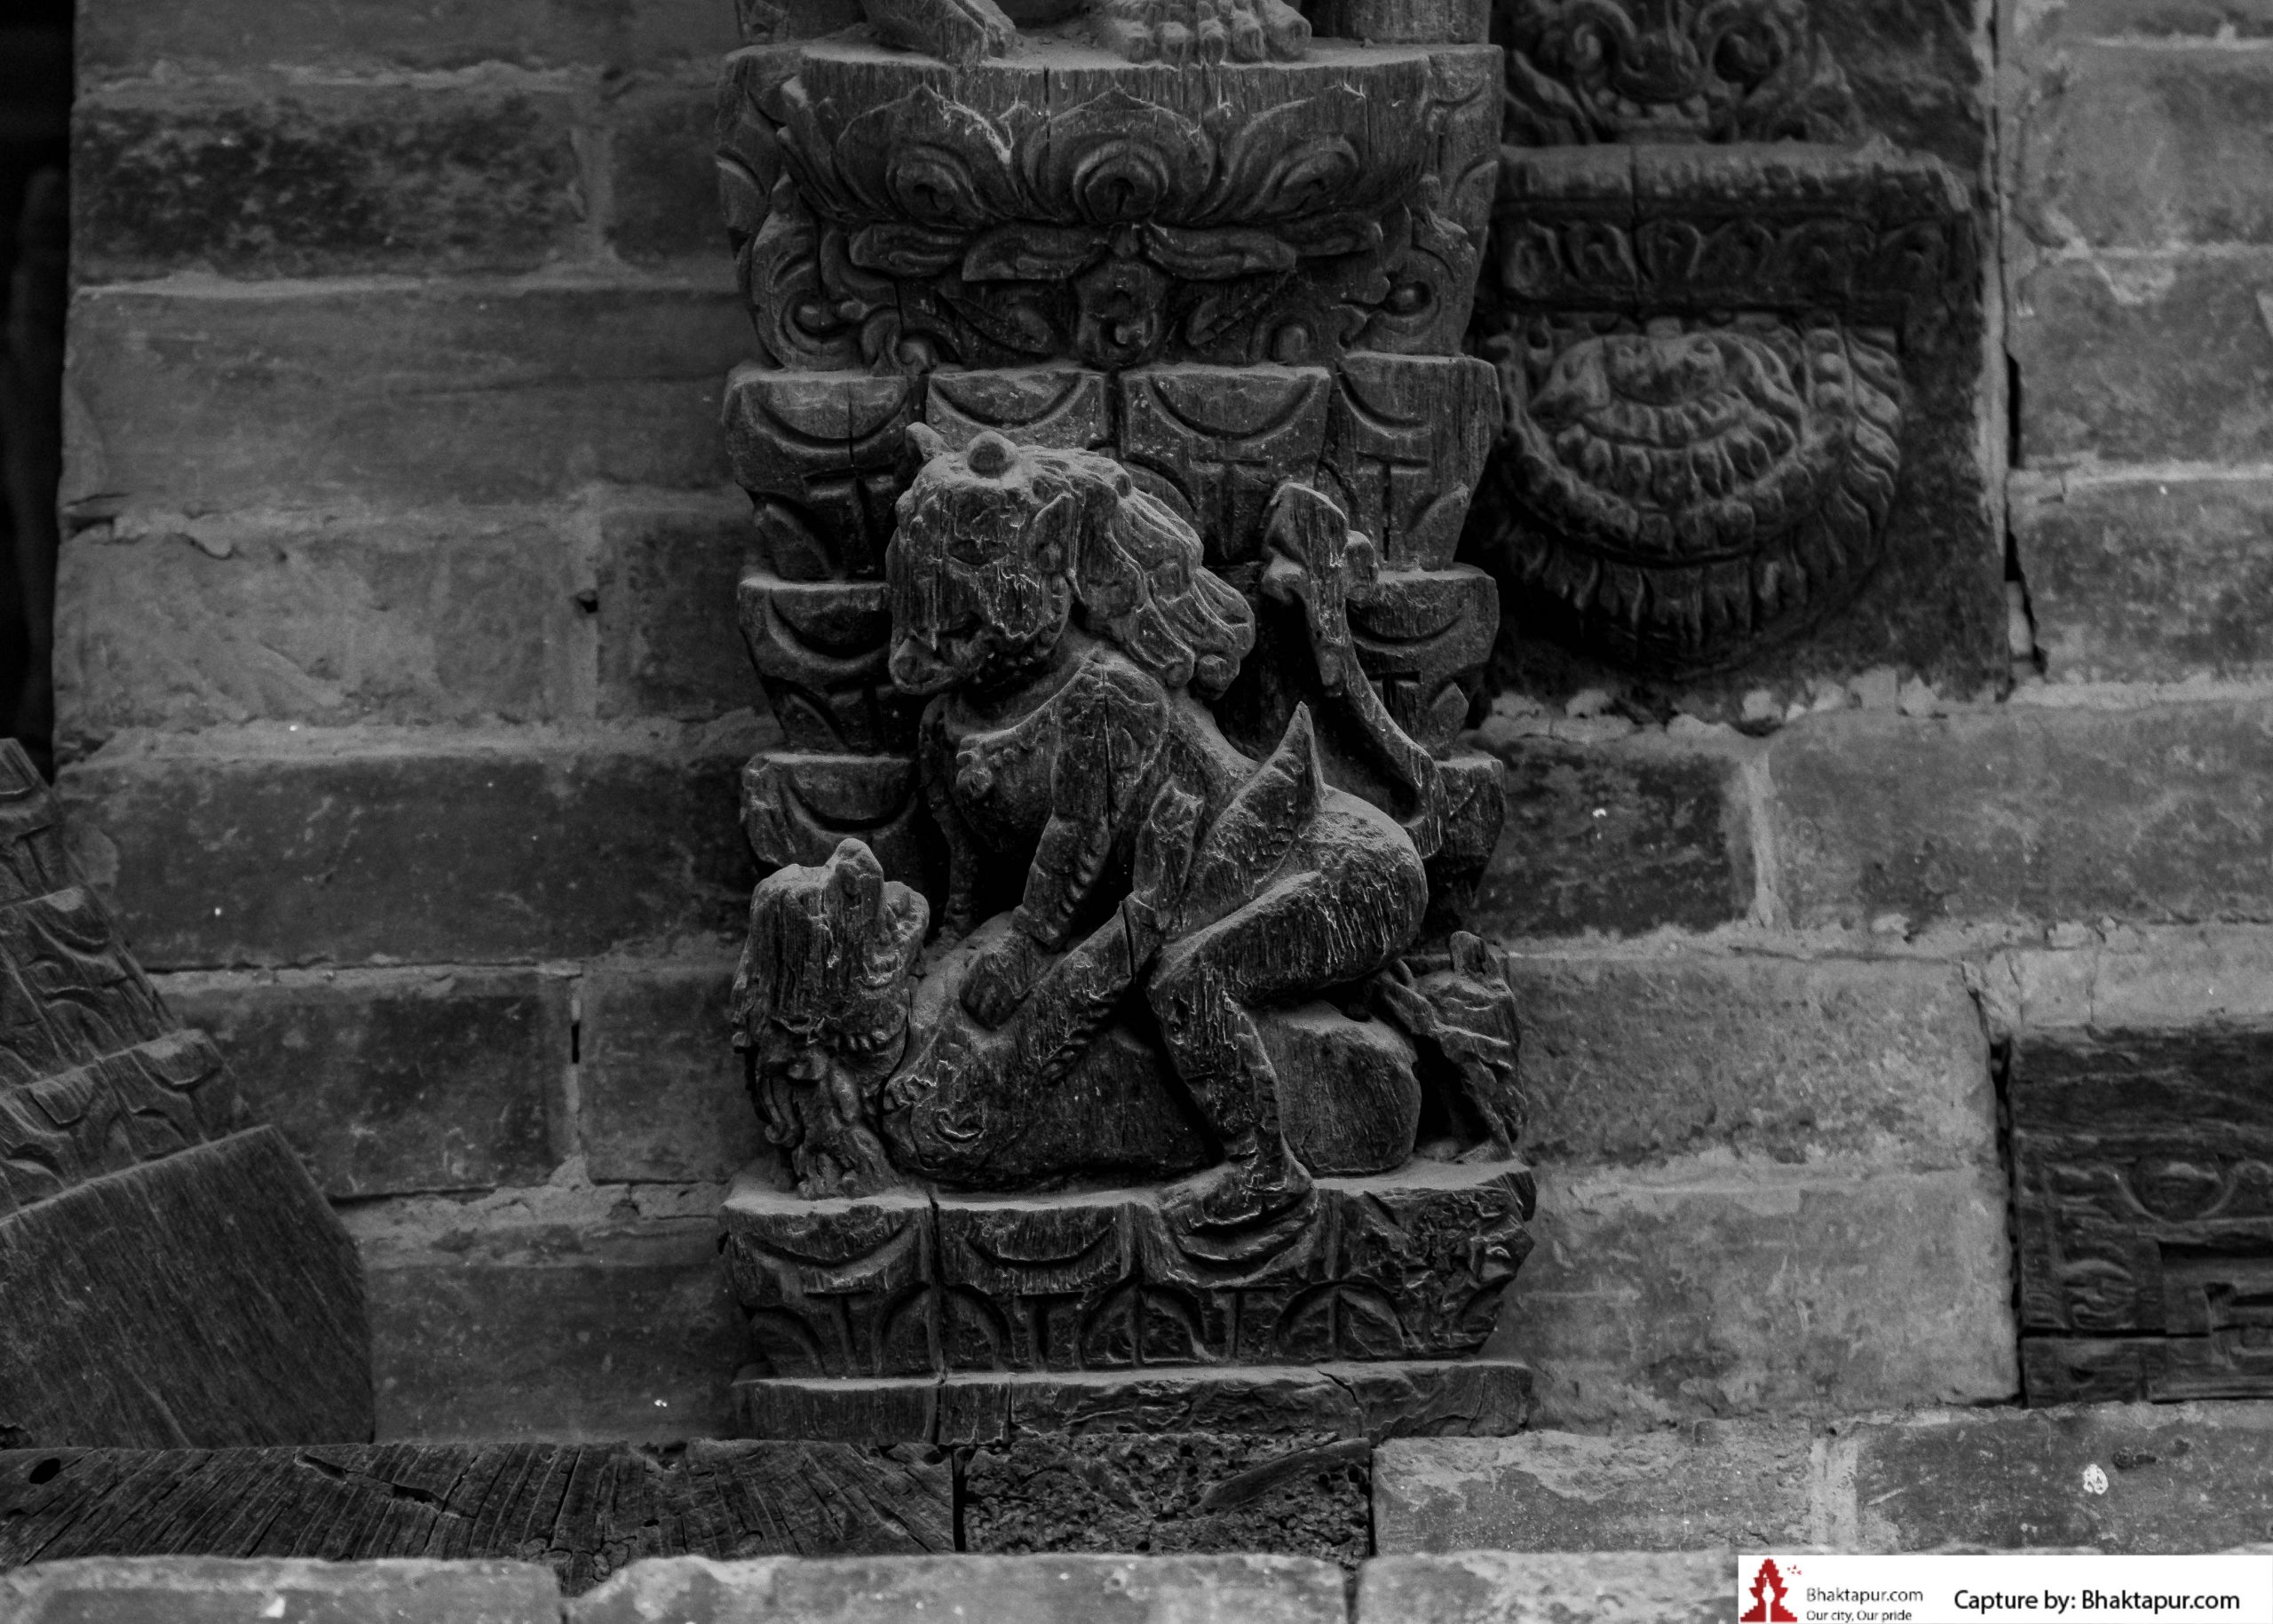 https://www.bhaktapur.com/wp-content/uploads/2021/08/erotic-carving-112-of-137-scaled.jpg